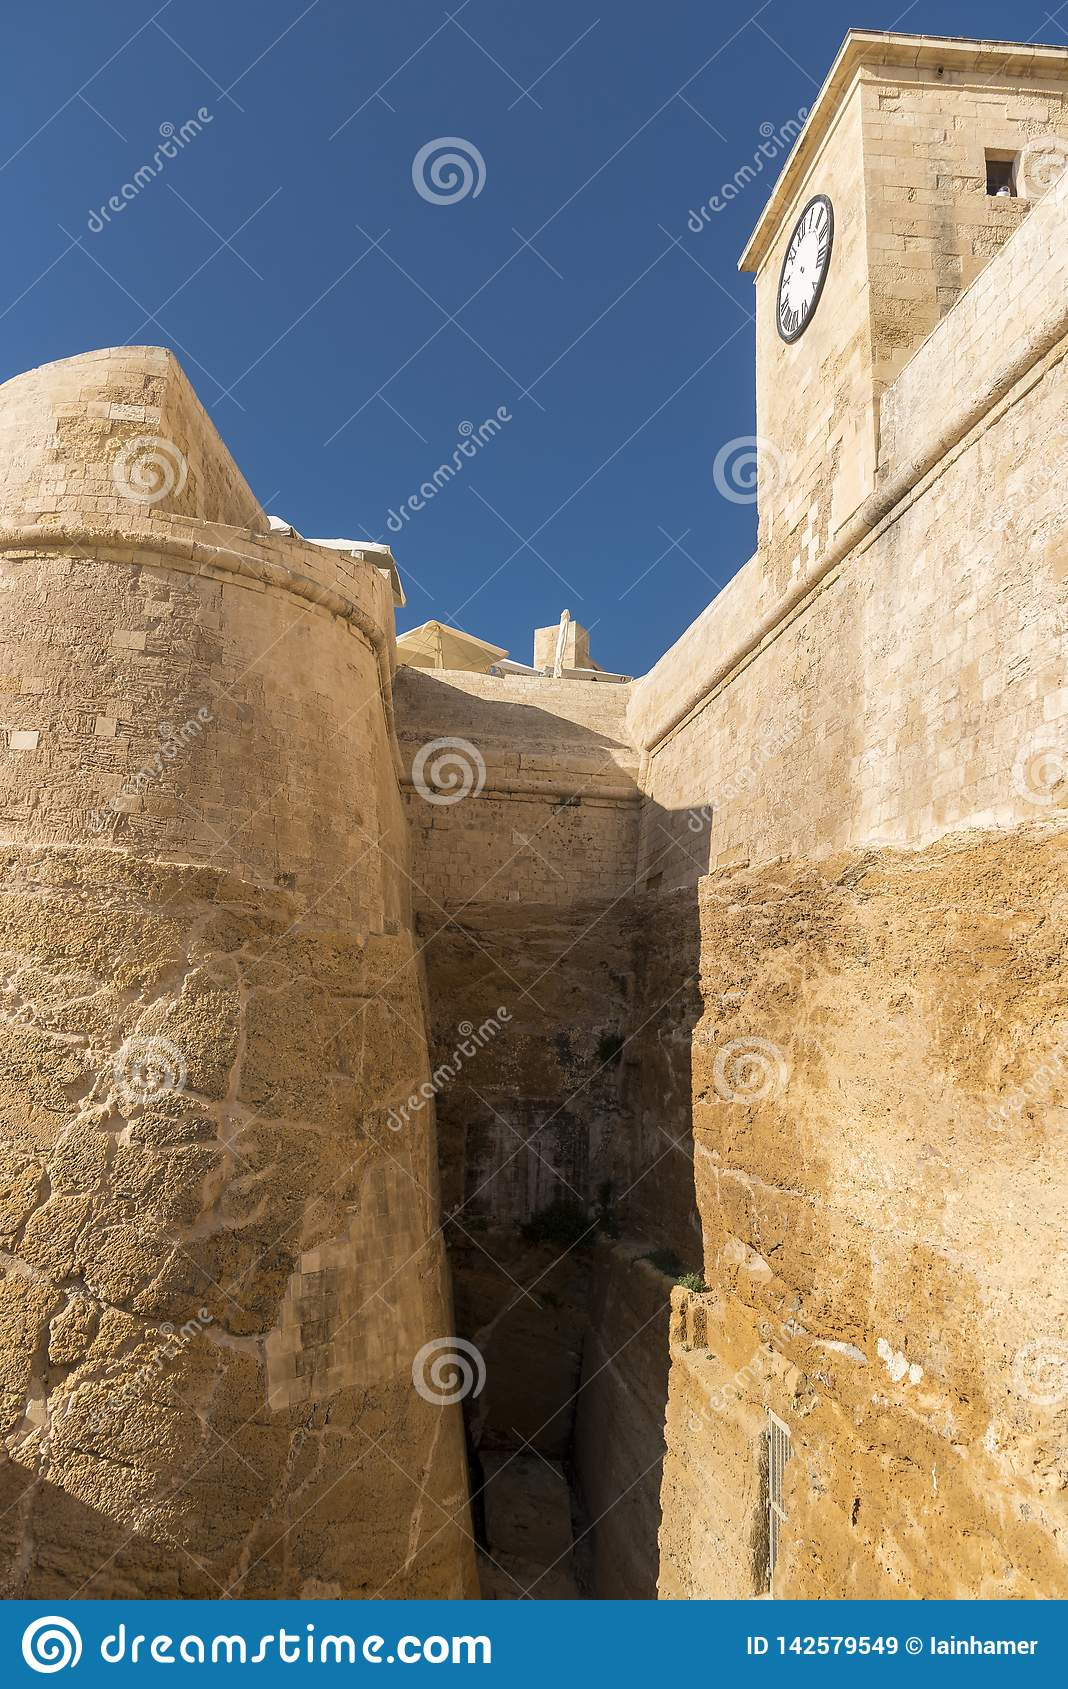 The walls and clock of the Citadel Victoria Gozo